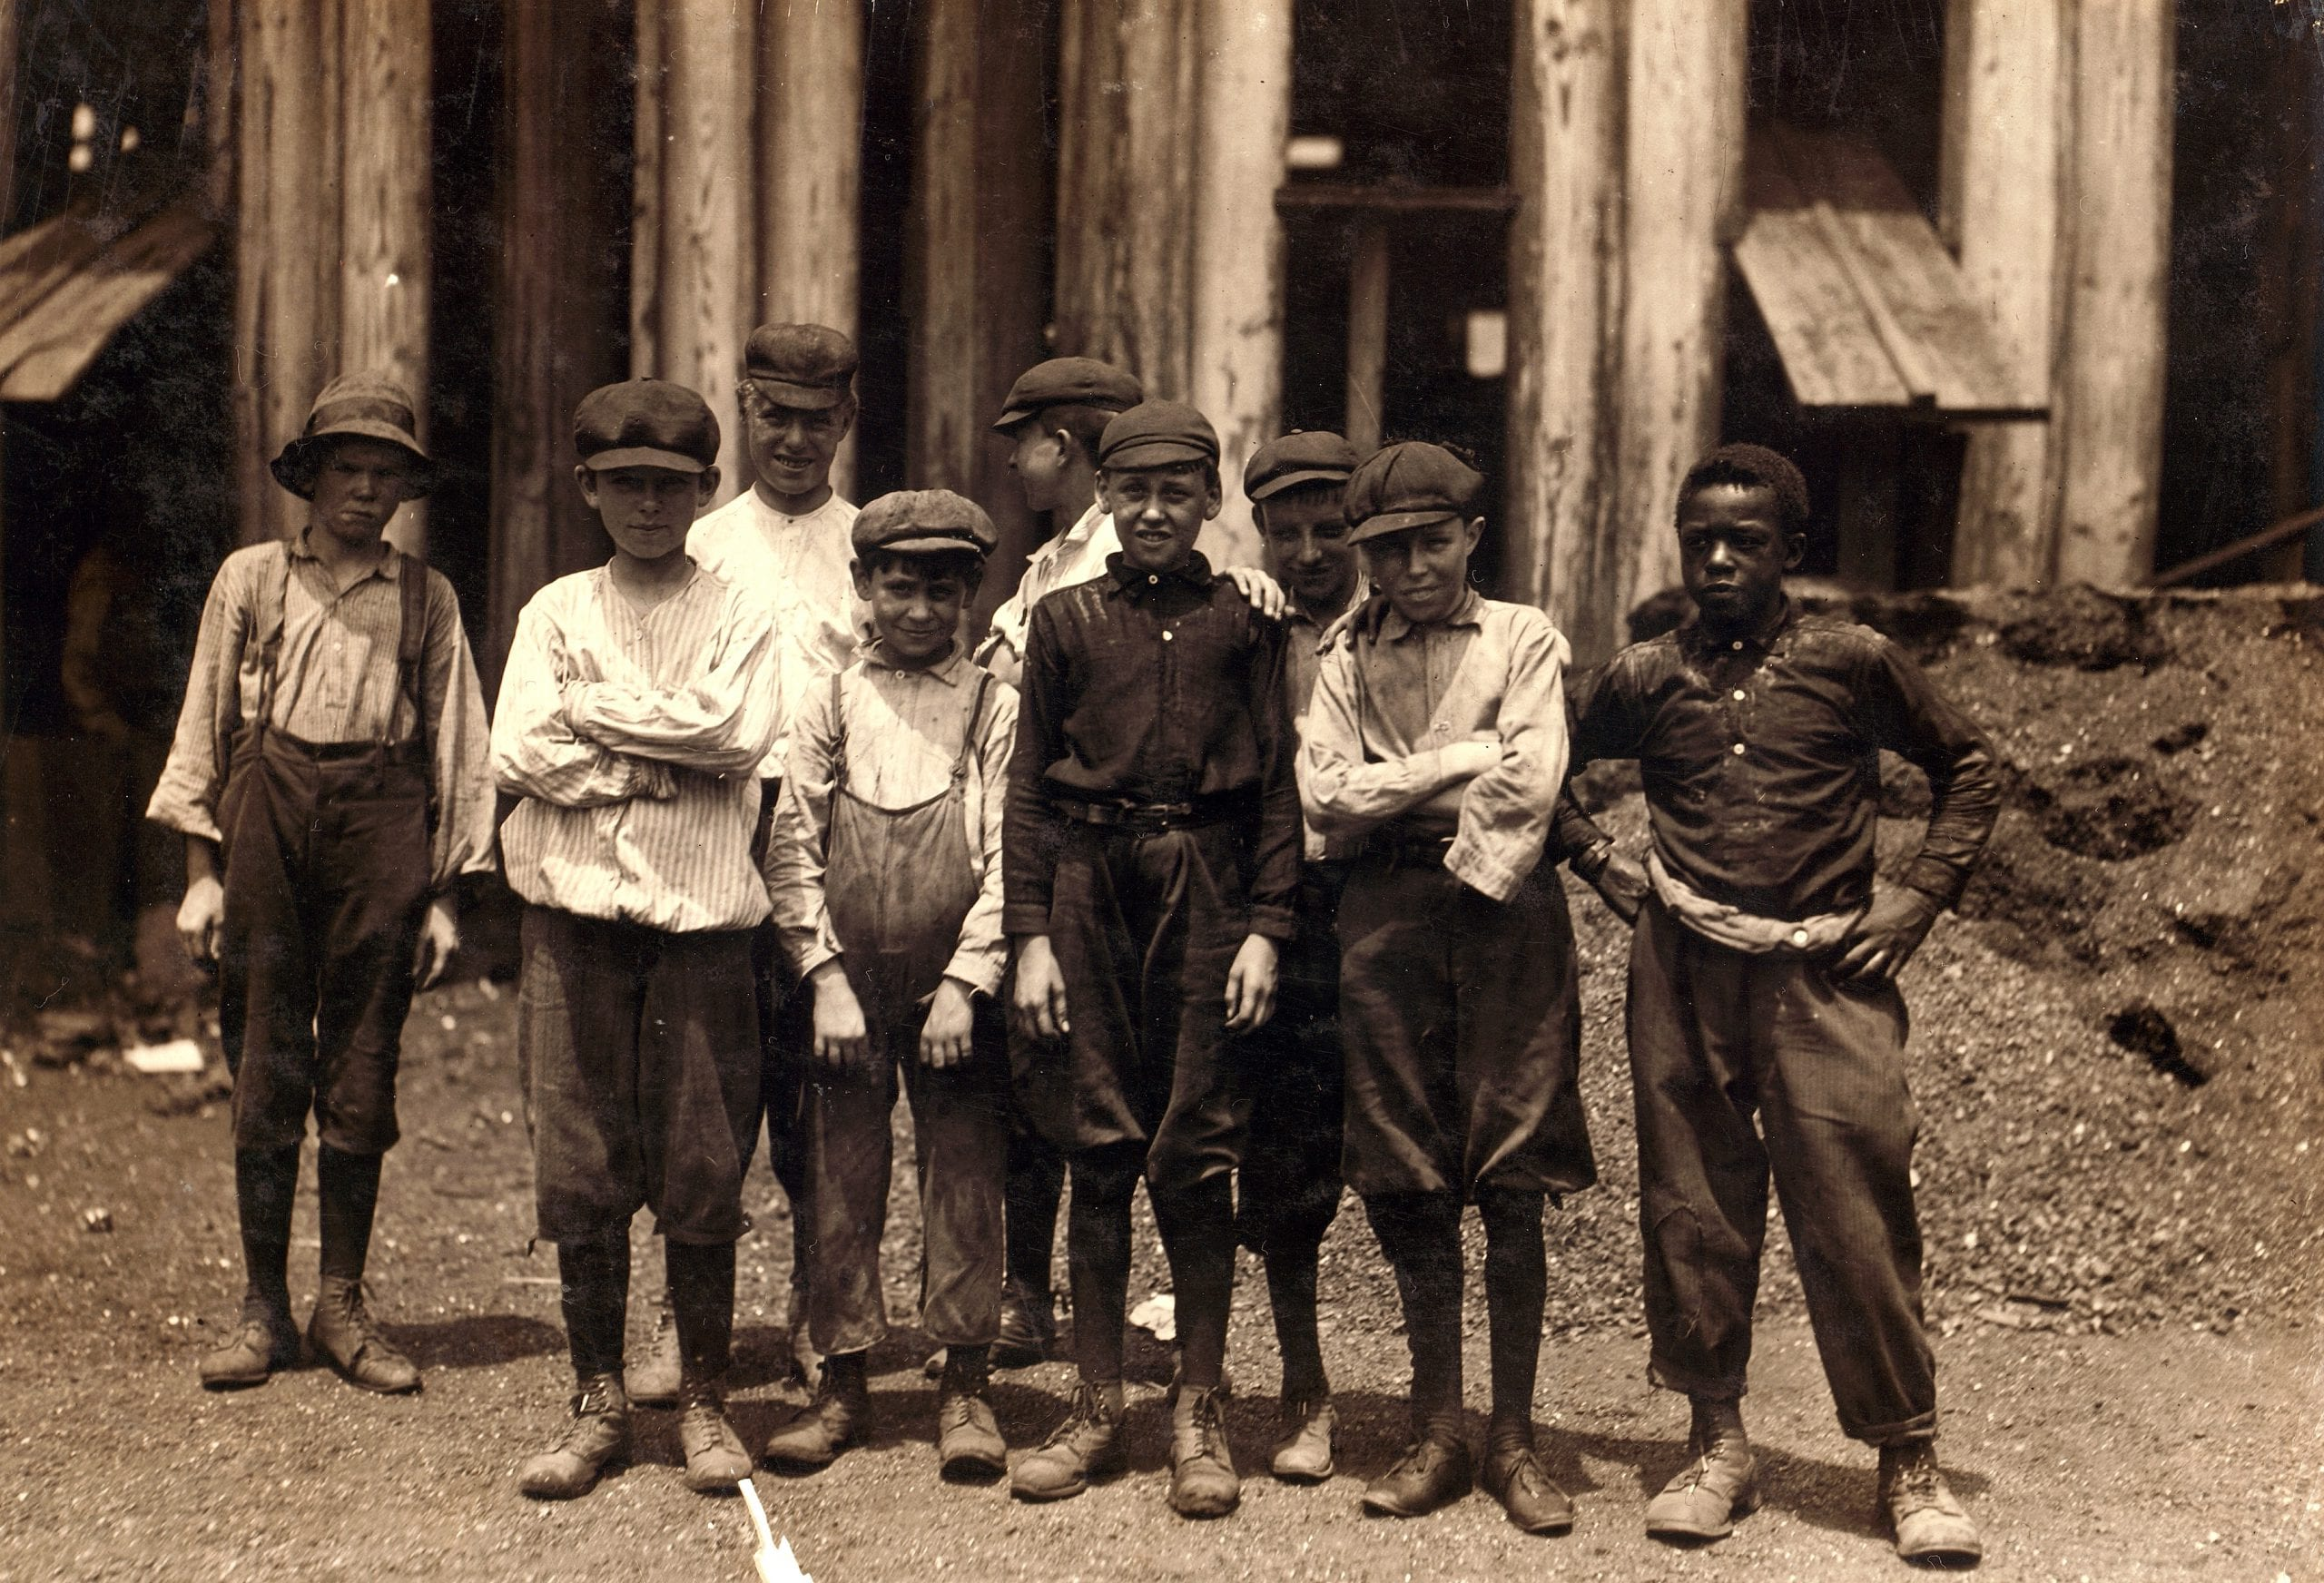 Some of the youngsters on day shift (next week on night shift) at Old Dominion Glass Co., Alexandria, Va. I counted 7 white boys and several colored boys that seemed to be under 14 years old. The youngest ones would not give names, but the following are a few: Frank Ellmore, 913 Gibbon St., apparently ten or eleven. Been there three months. Dannie Powell, 307 Columbus St., Henry O'Donnell, 1923 Duke St. Leslie Mason, 912 Wilke St. Location: Alexandria, Virginia.